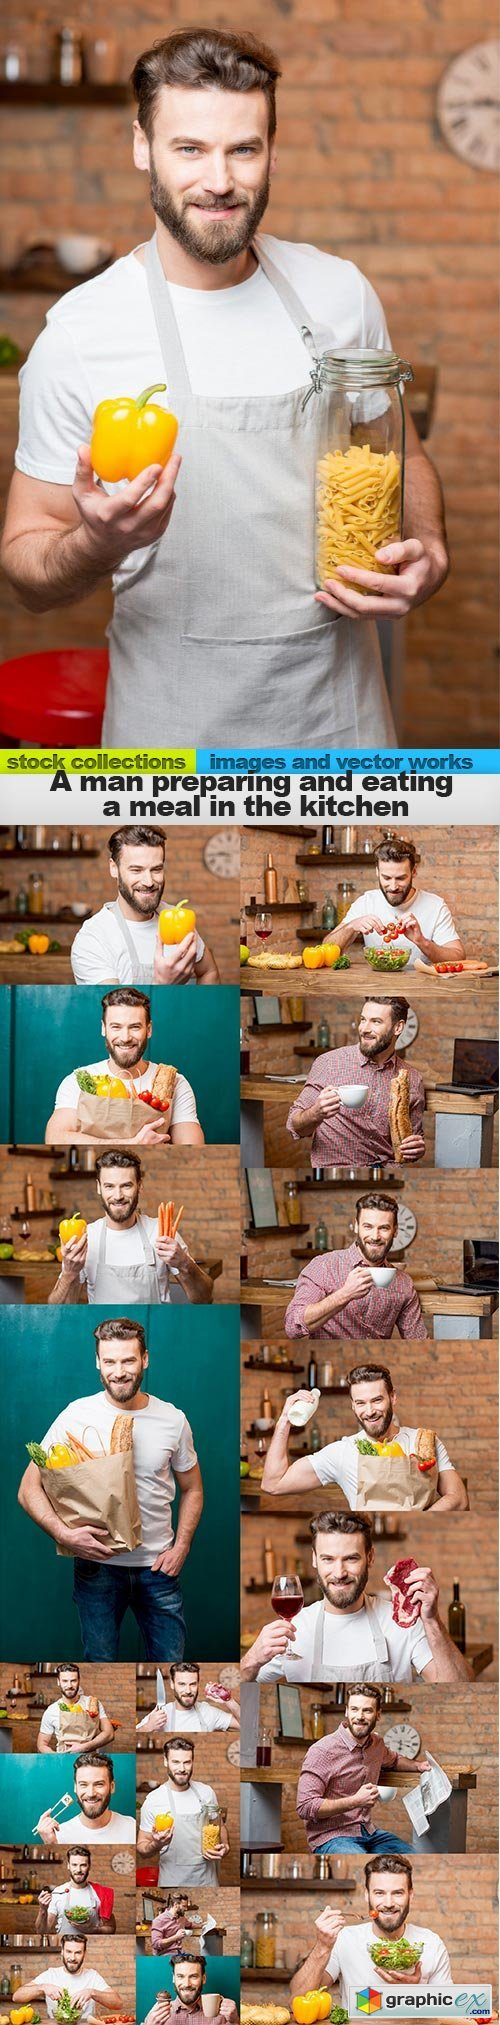 A man preparing and eating a meal in the kitchen, 19 x UHQ JPEG